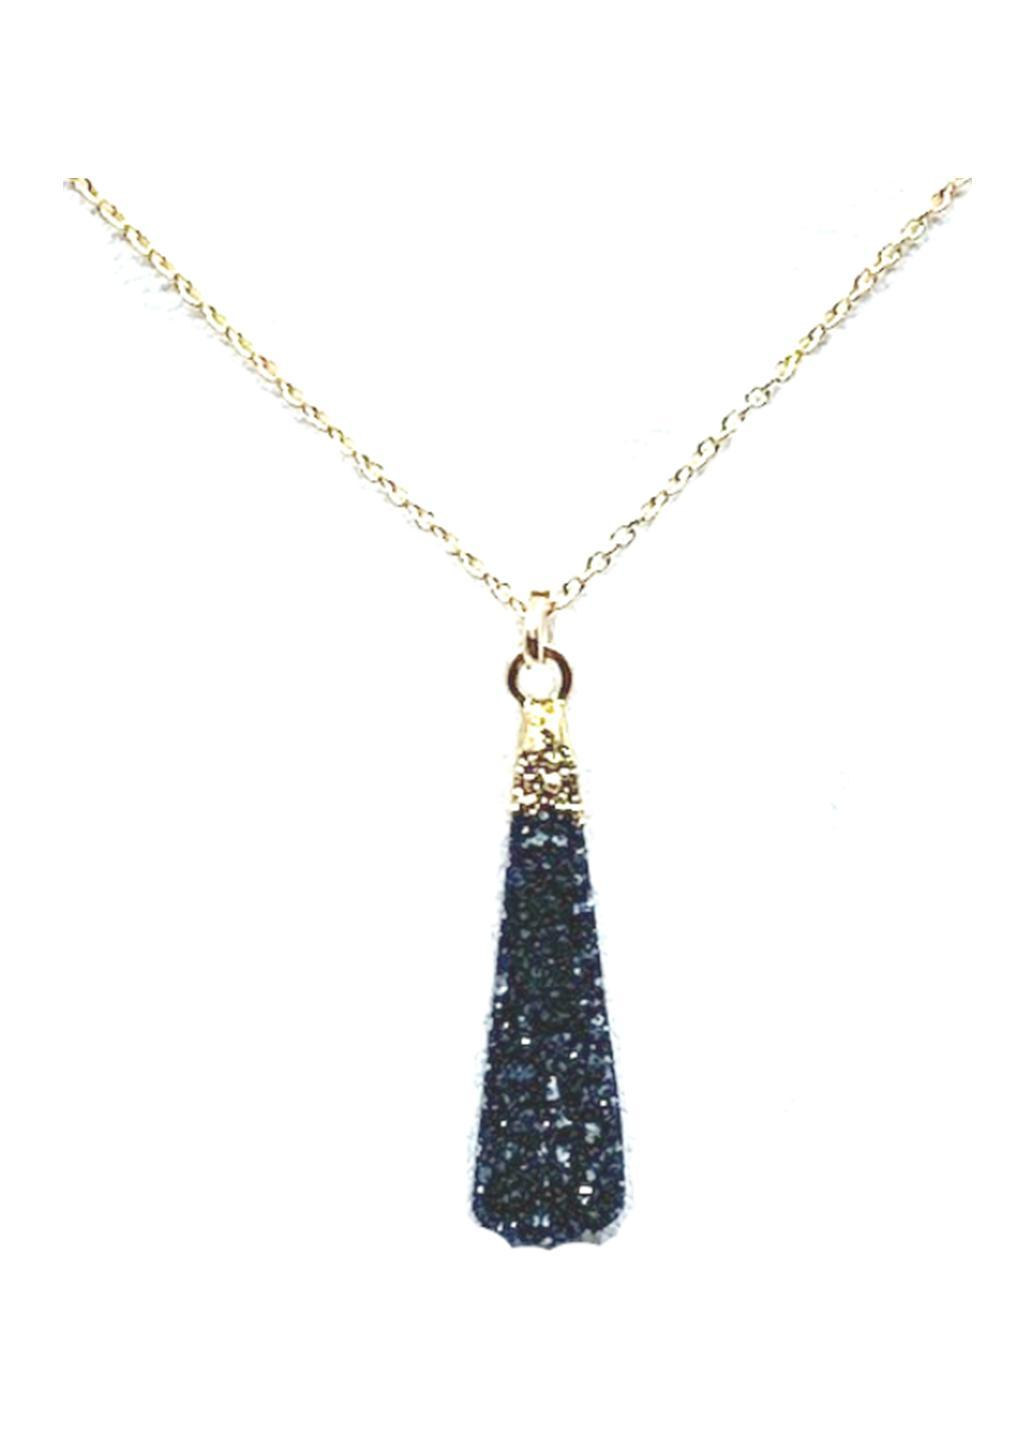 Long Druzy Teardrop Necklace on 14kt Gold Fill Chain: Black Druzy (NGCP794DZX) Necklaces athenadesigns Default Title